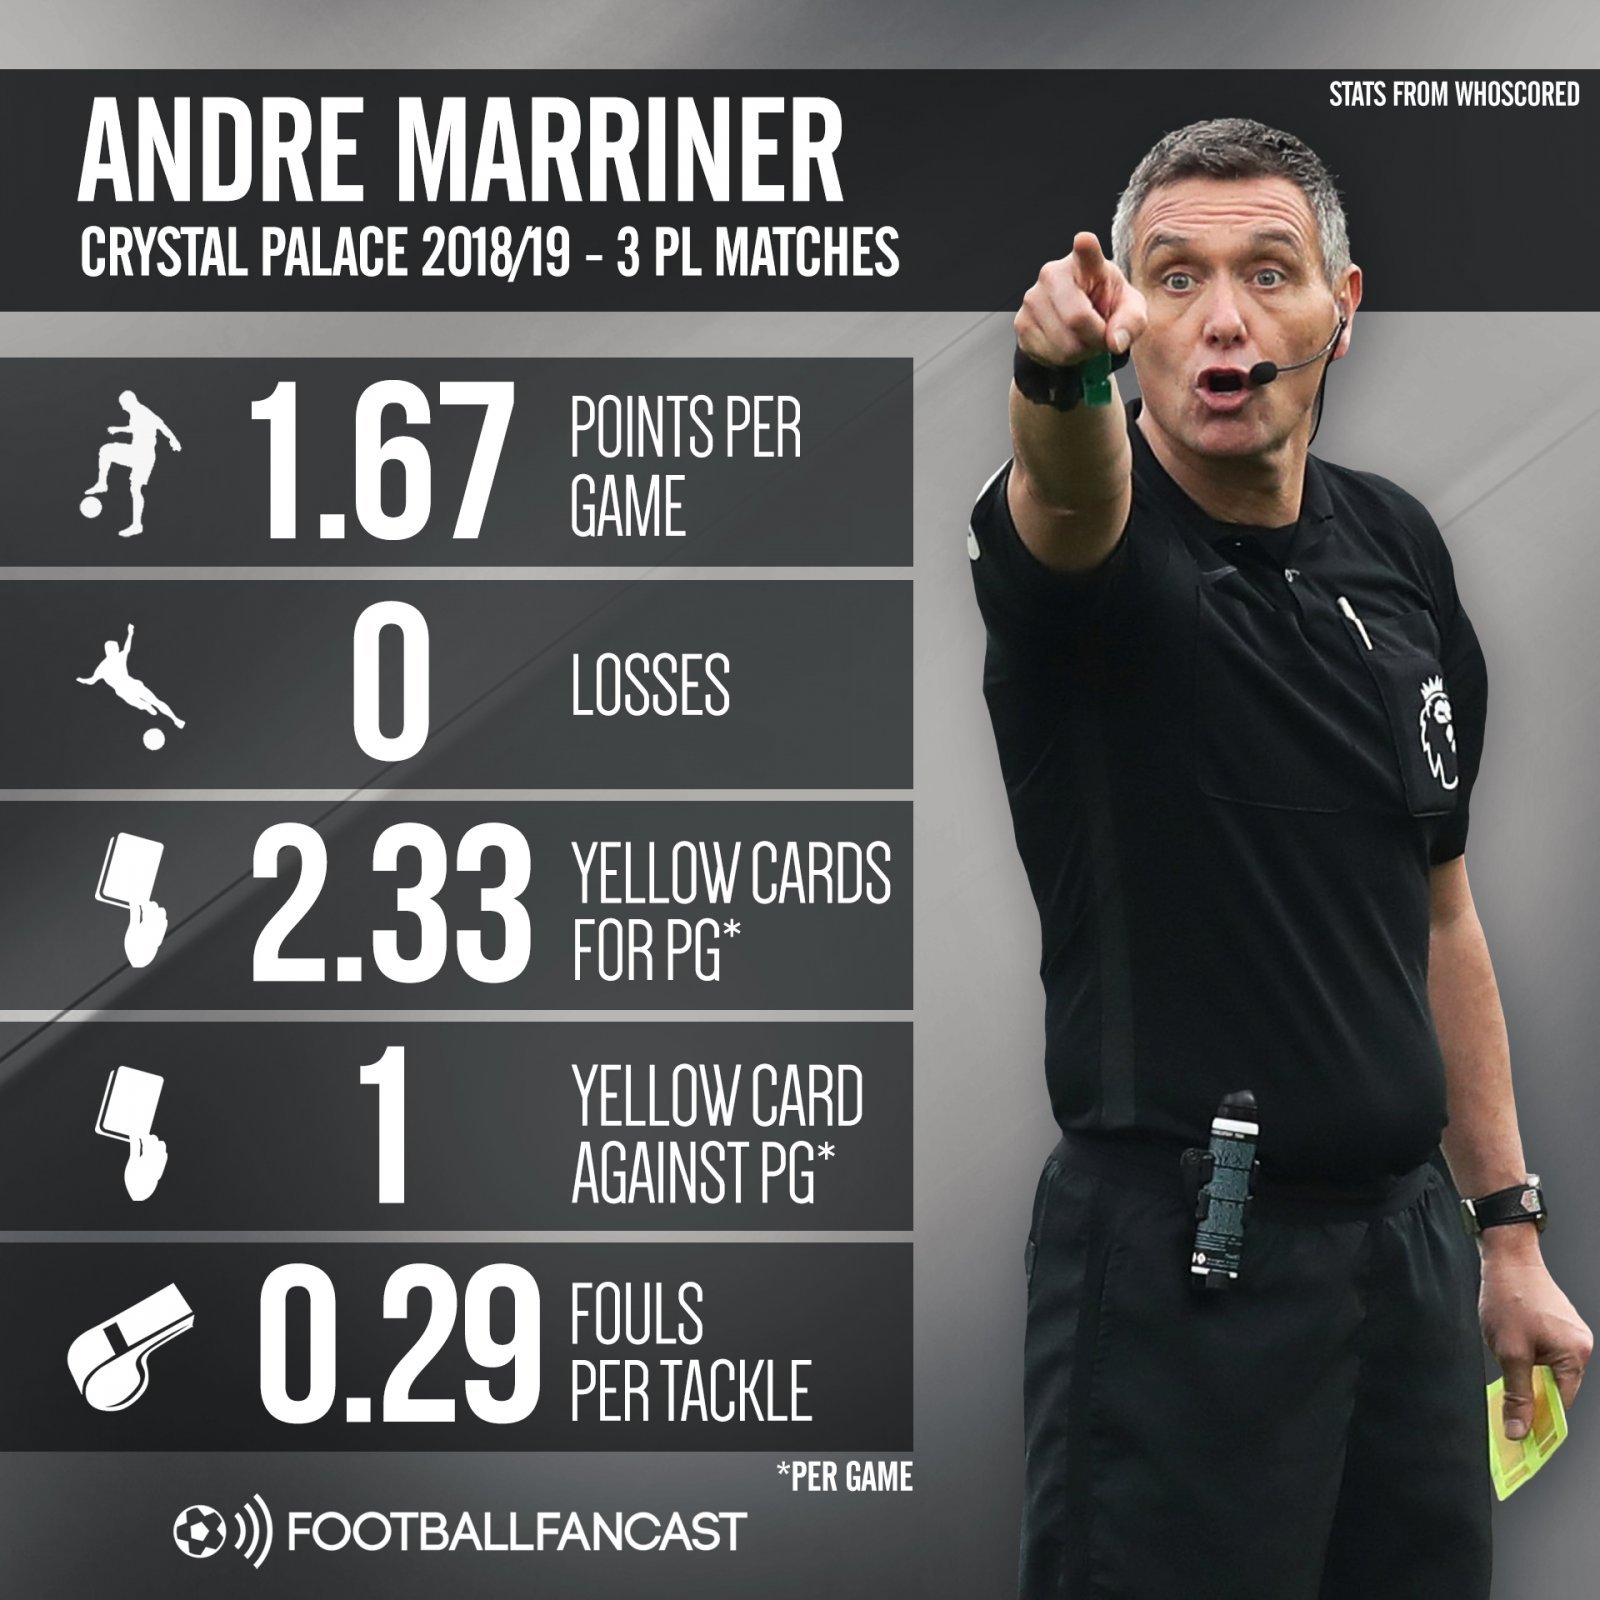 Andre Marriner's stats when refereeing Crystal Palace matches this season